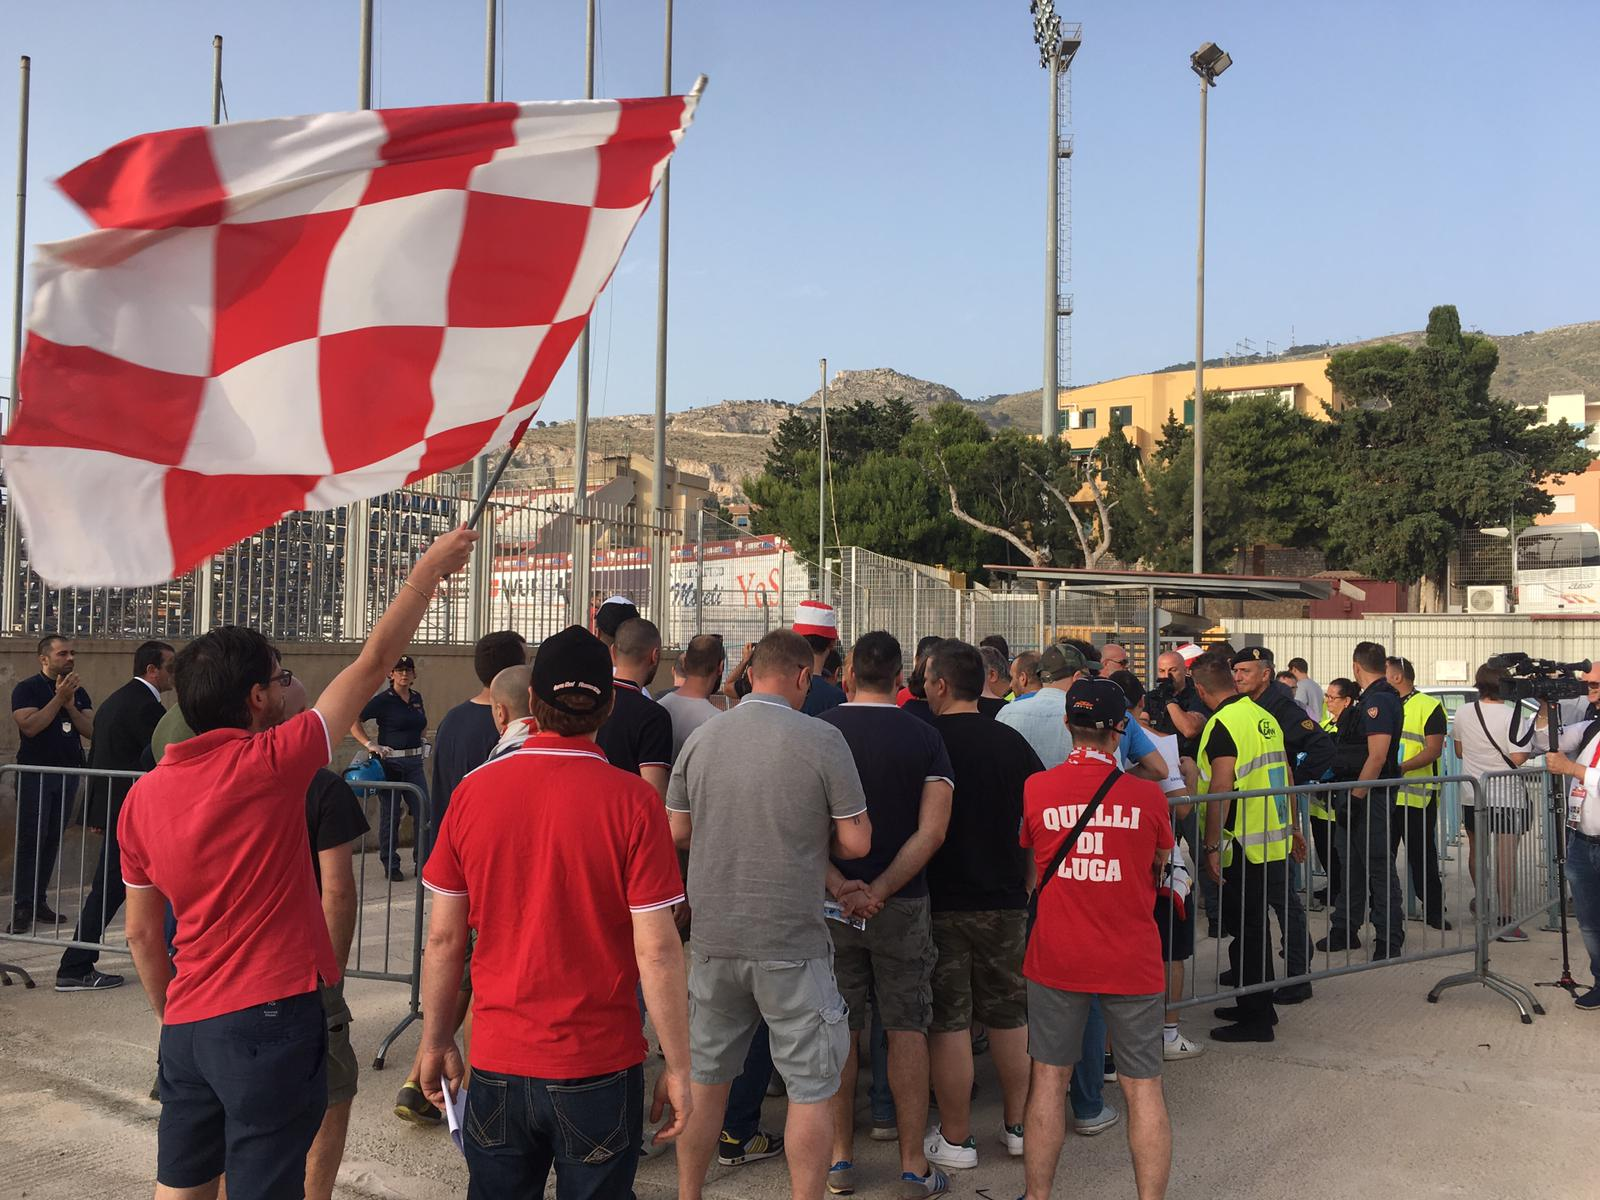 Playoff - Trapani promosso in serie B